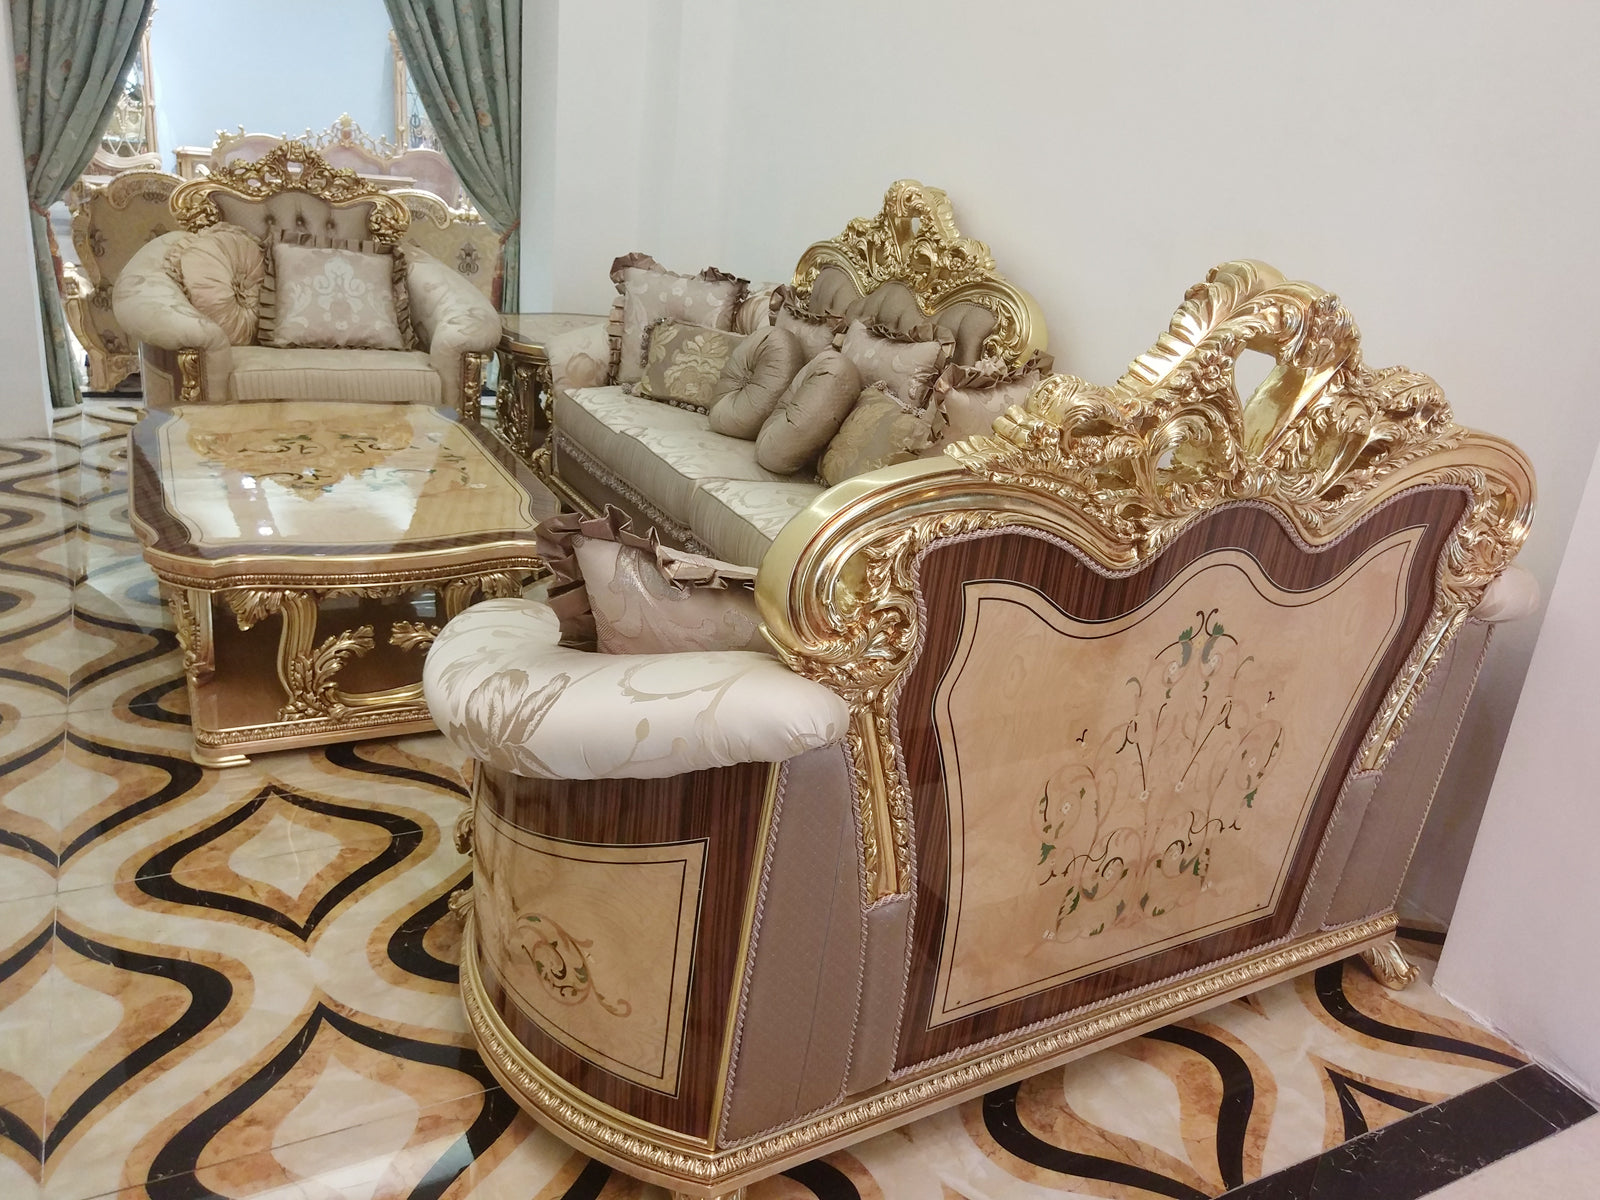 Deluxe European Neoclassic Style Wood Carved Sofa Set  3PCS | HL Dulce Domum